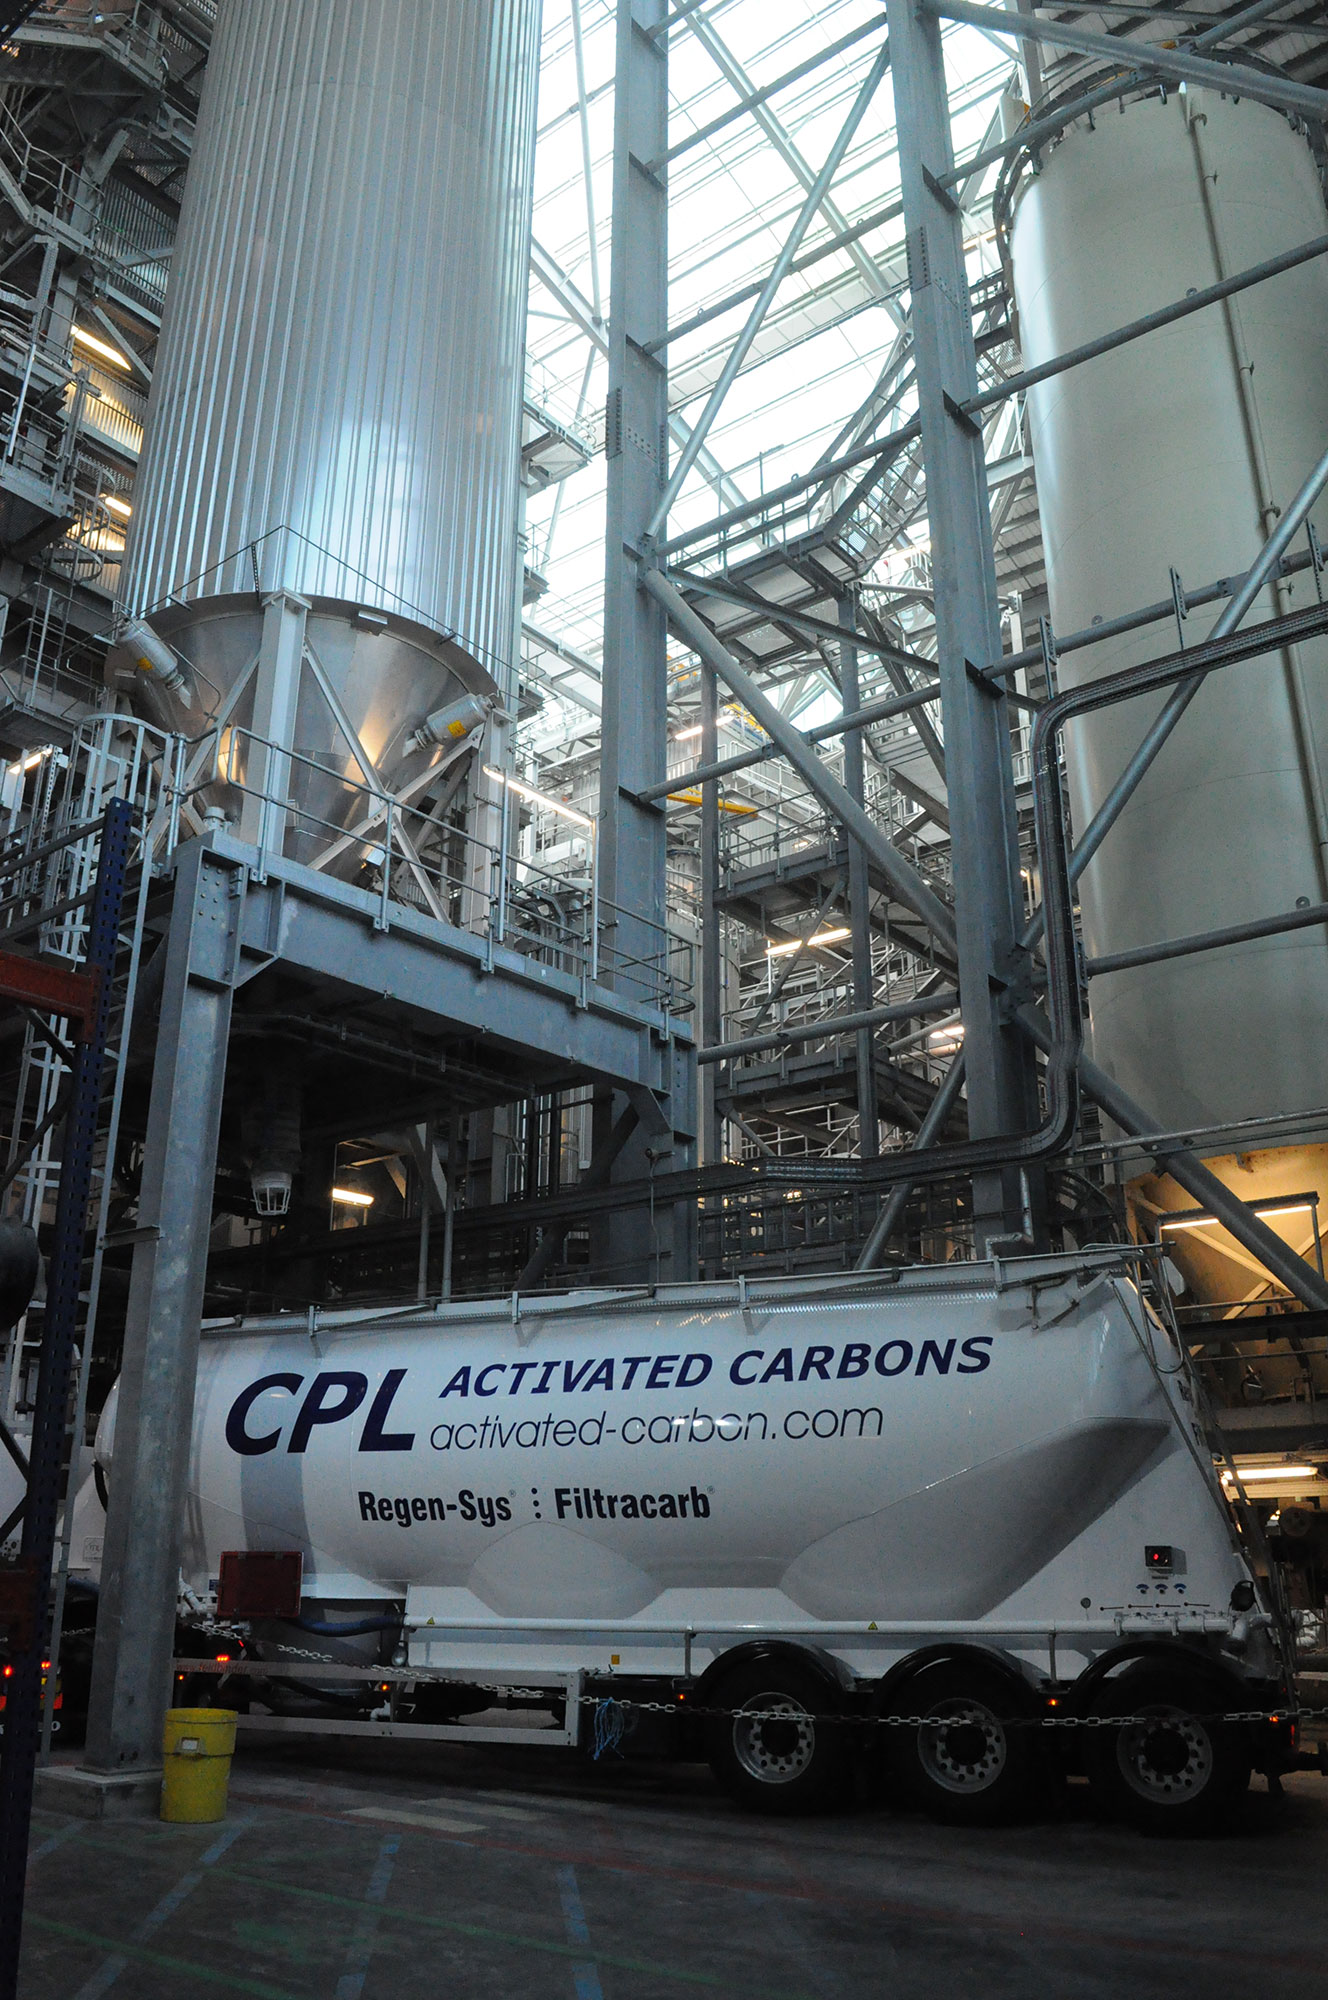 Bulk tanker delivery of FIltracarb® FGT® at an energy-from-waste (EfW) facility - Photo: D. Reay, CPL